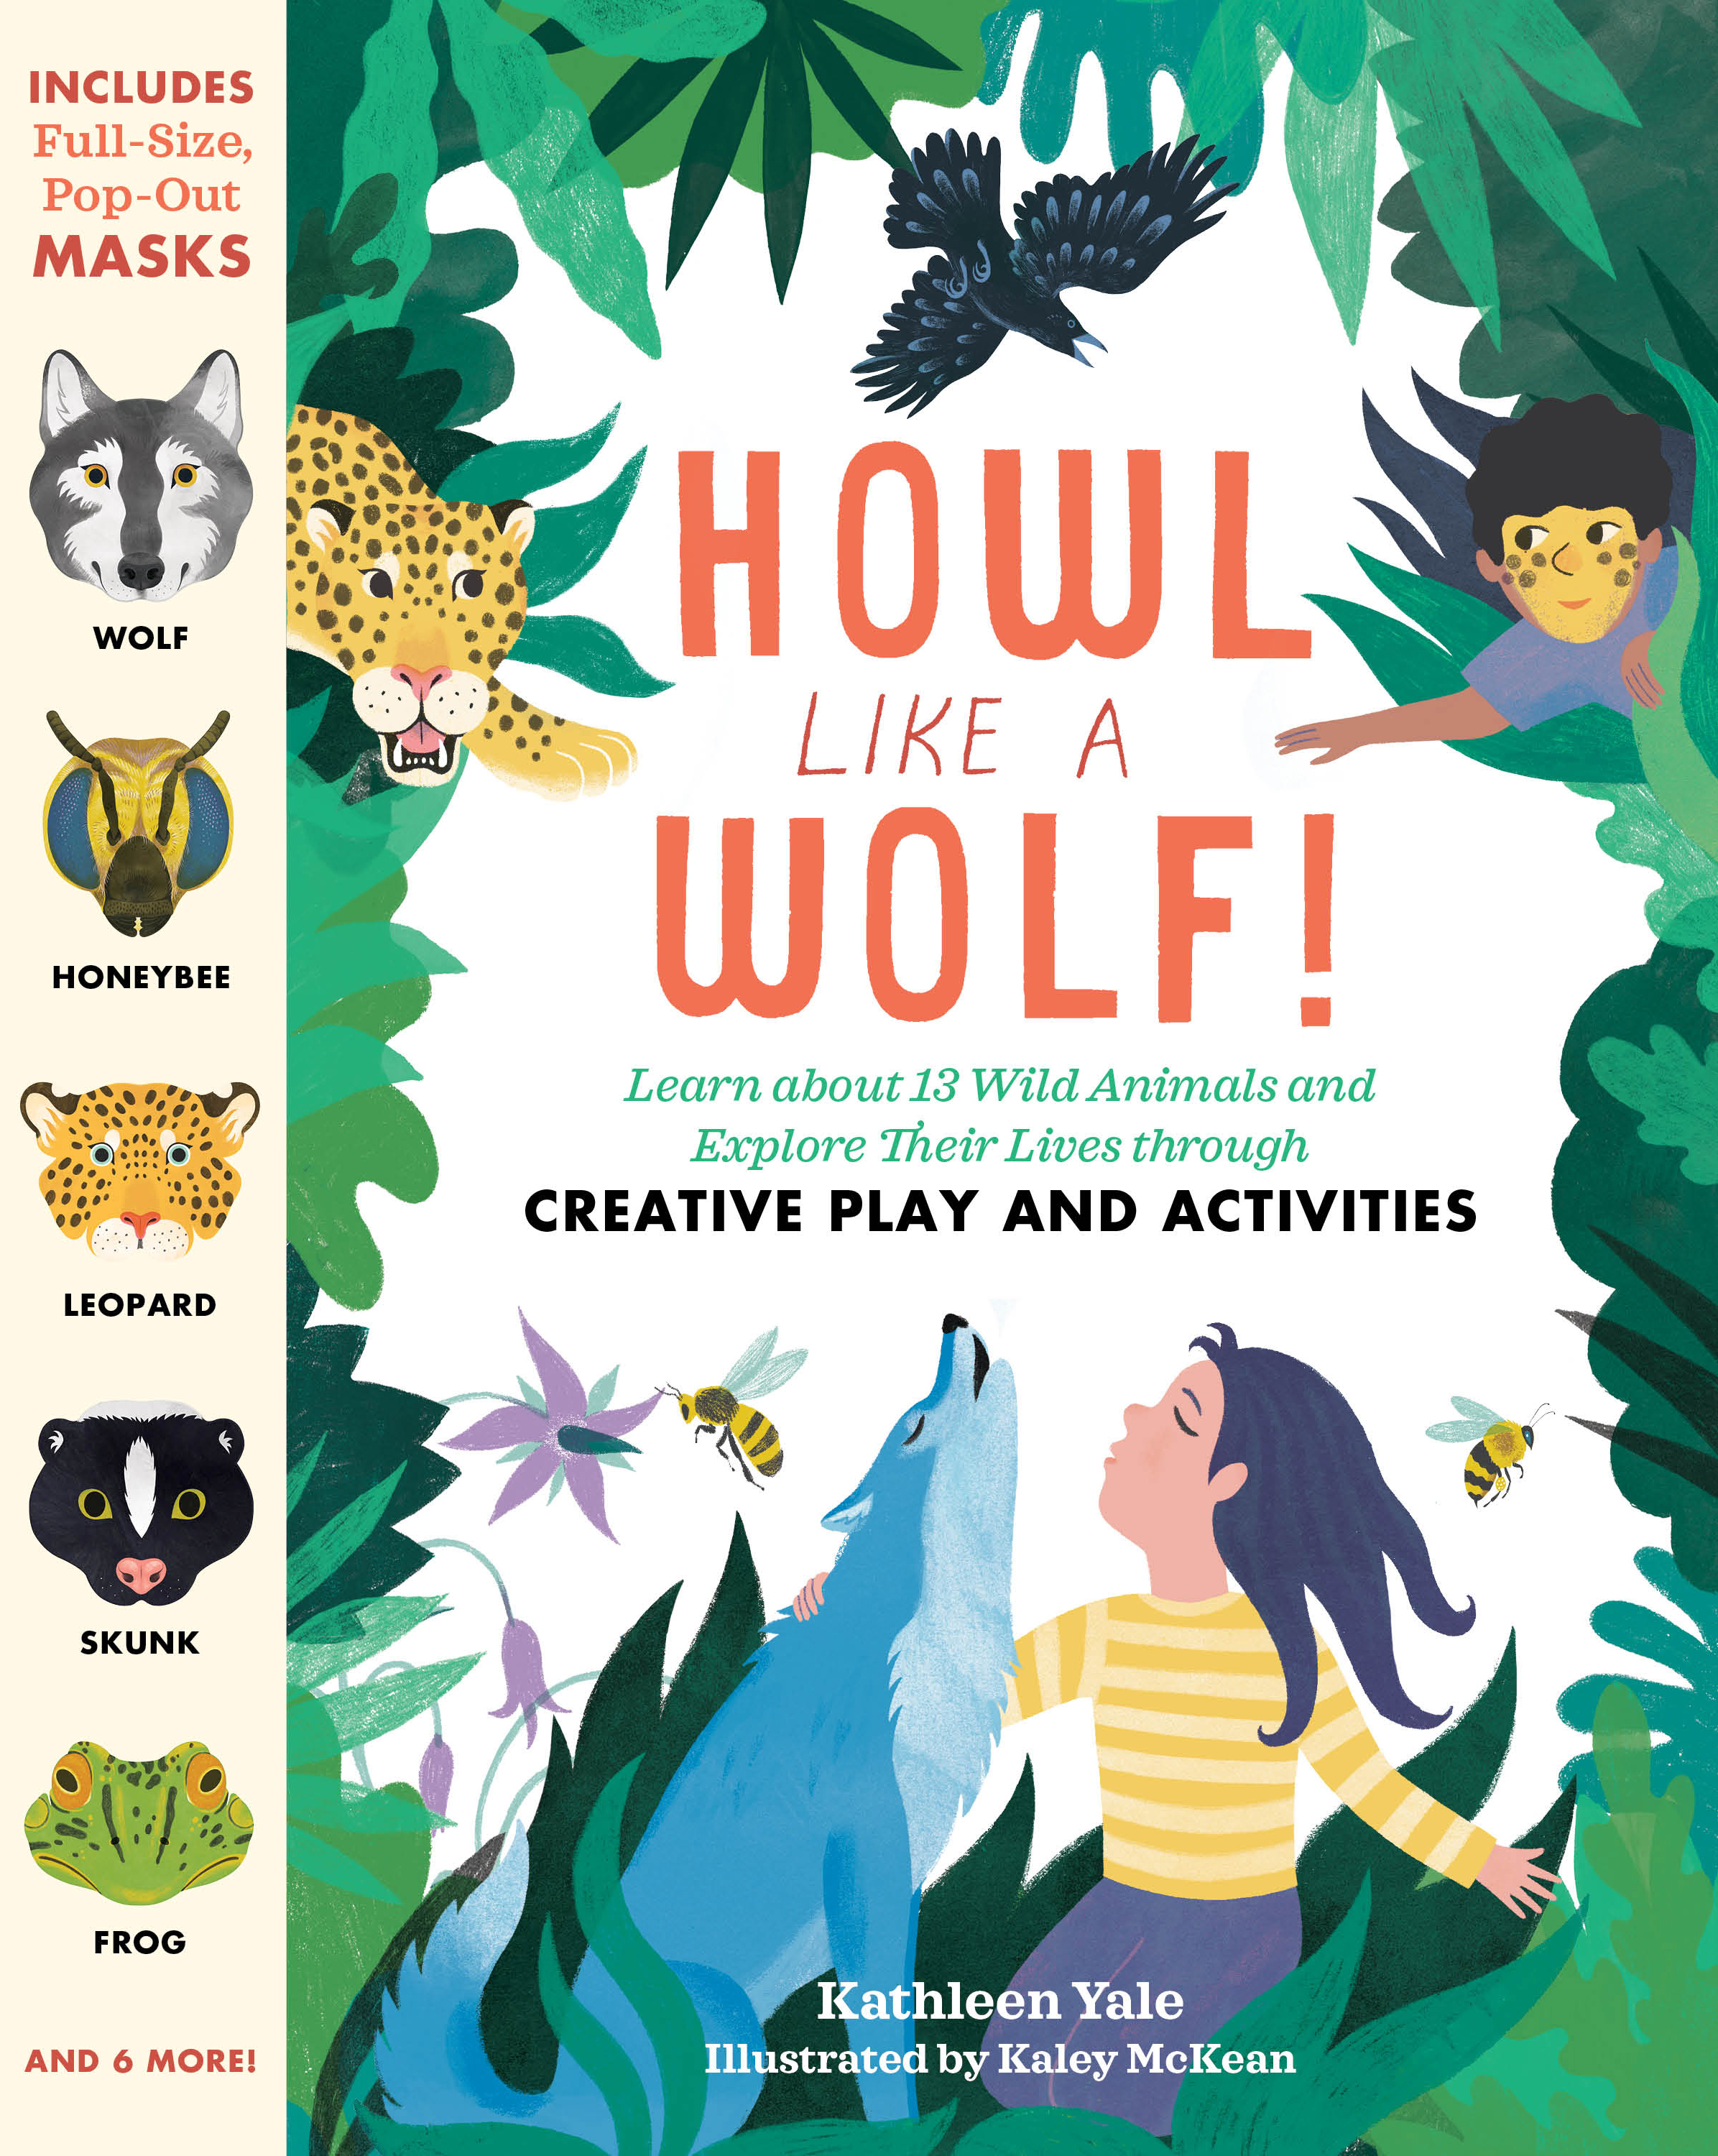 Howl like a Wolf! Learn about 13 Wild Animals and Explore Their Lives through Creative Play and Activities - Kathleen Yale